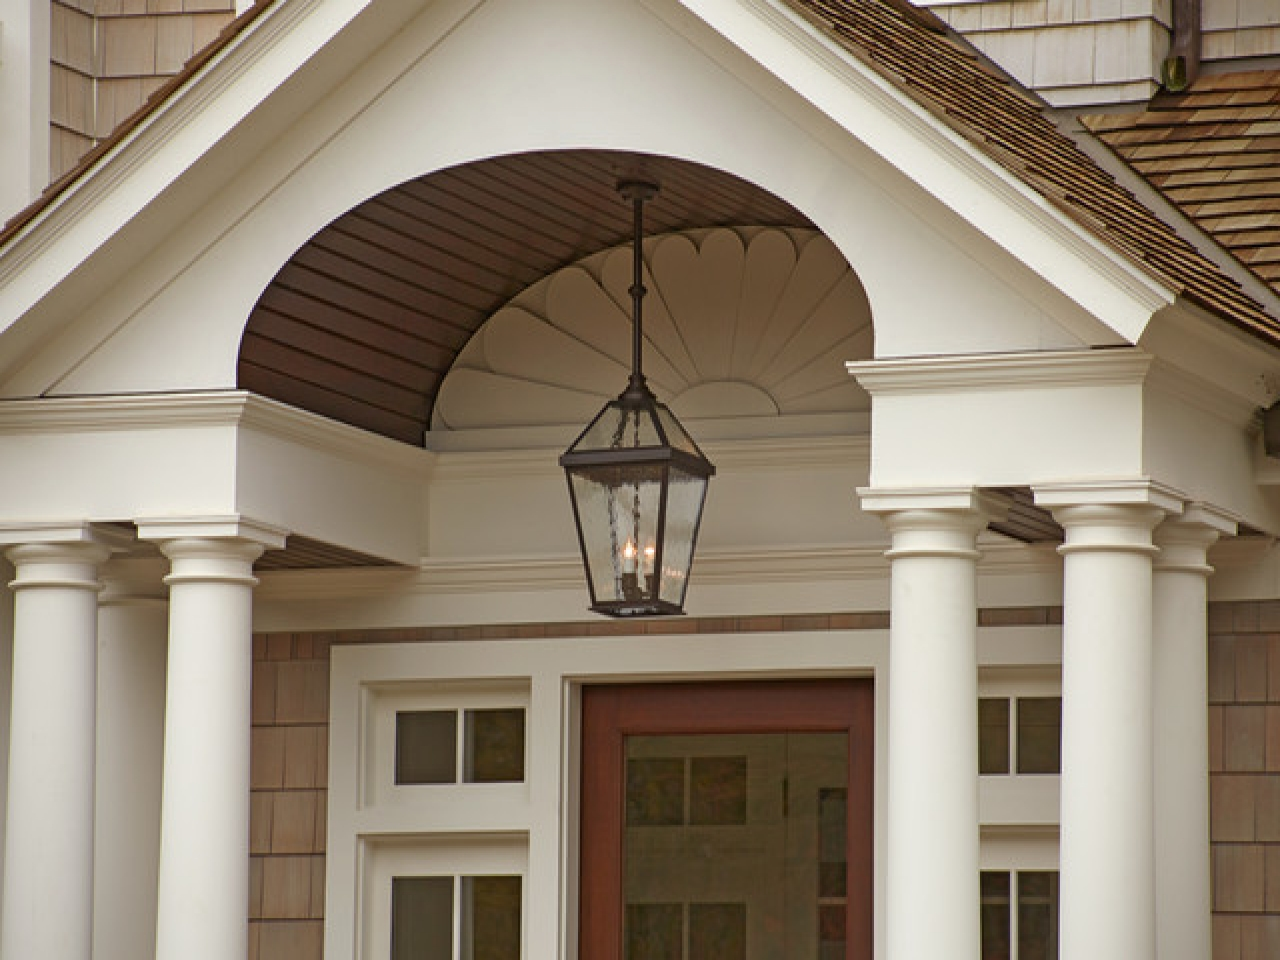 Image of: Front Porch Ceiling Light Classic